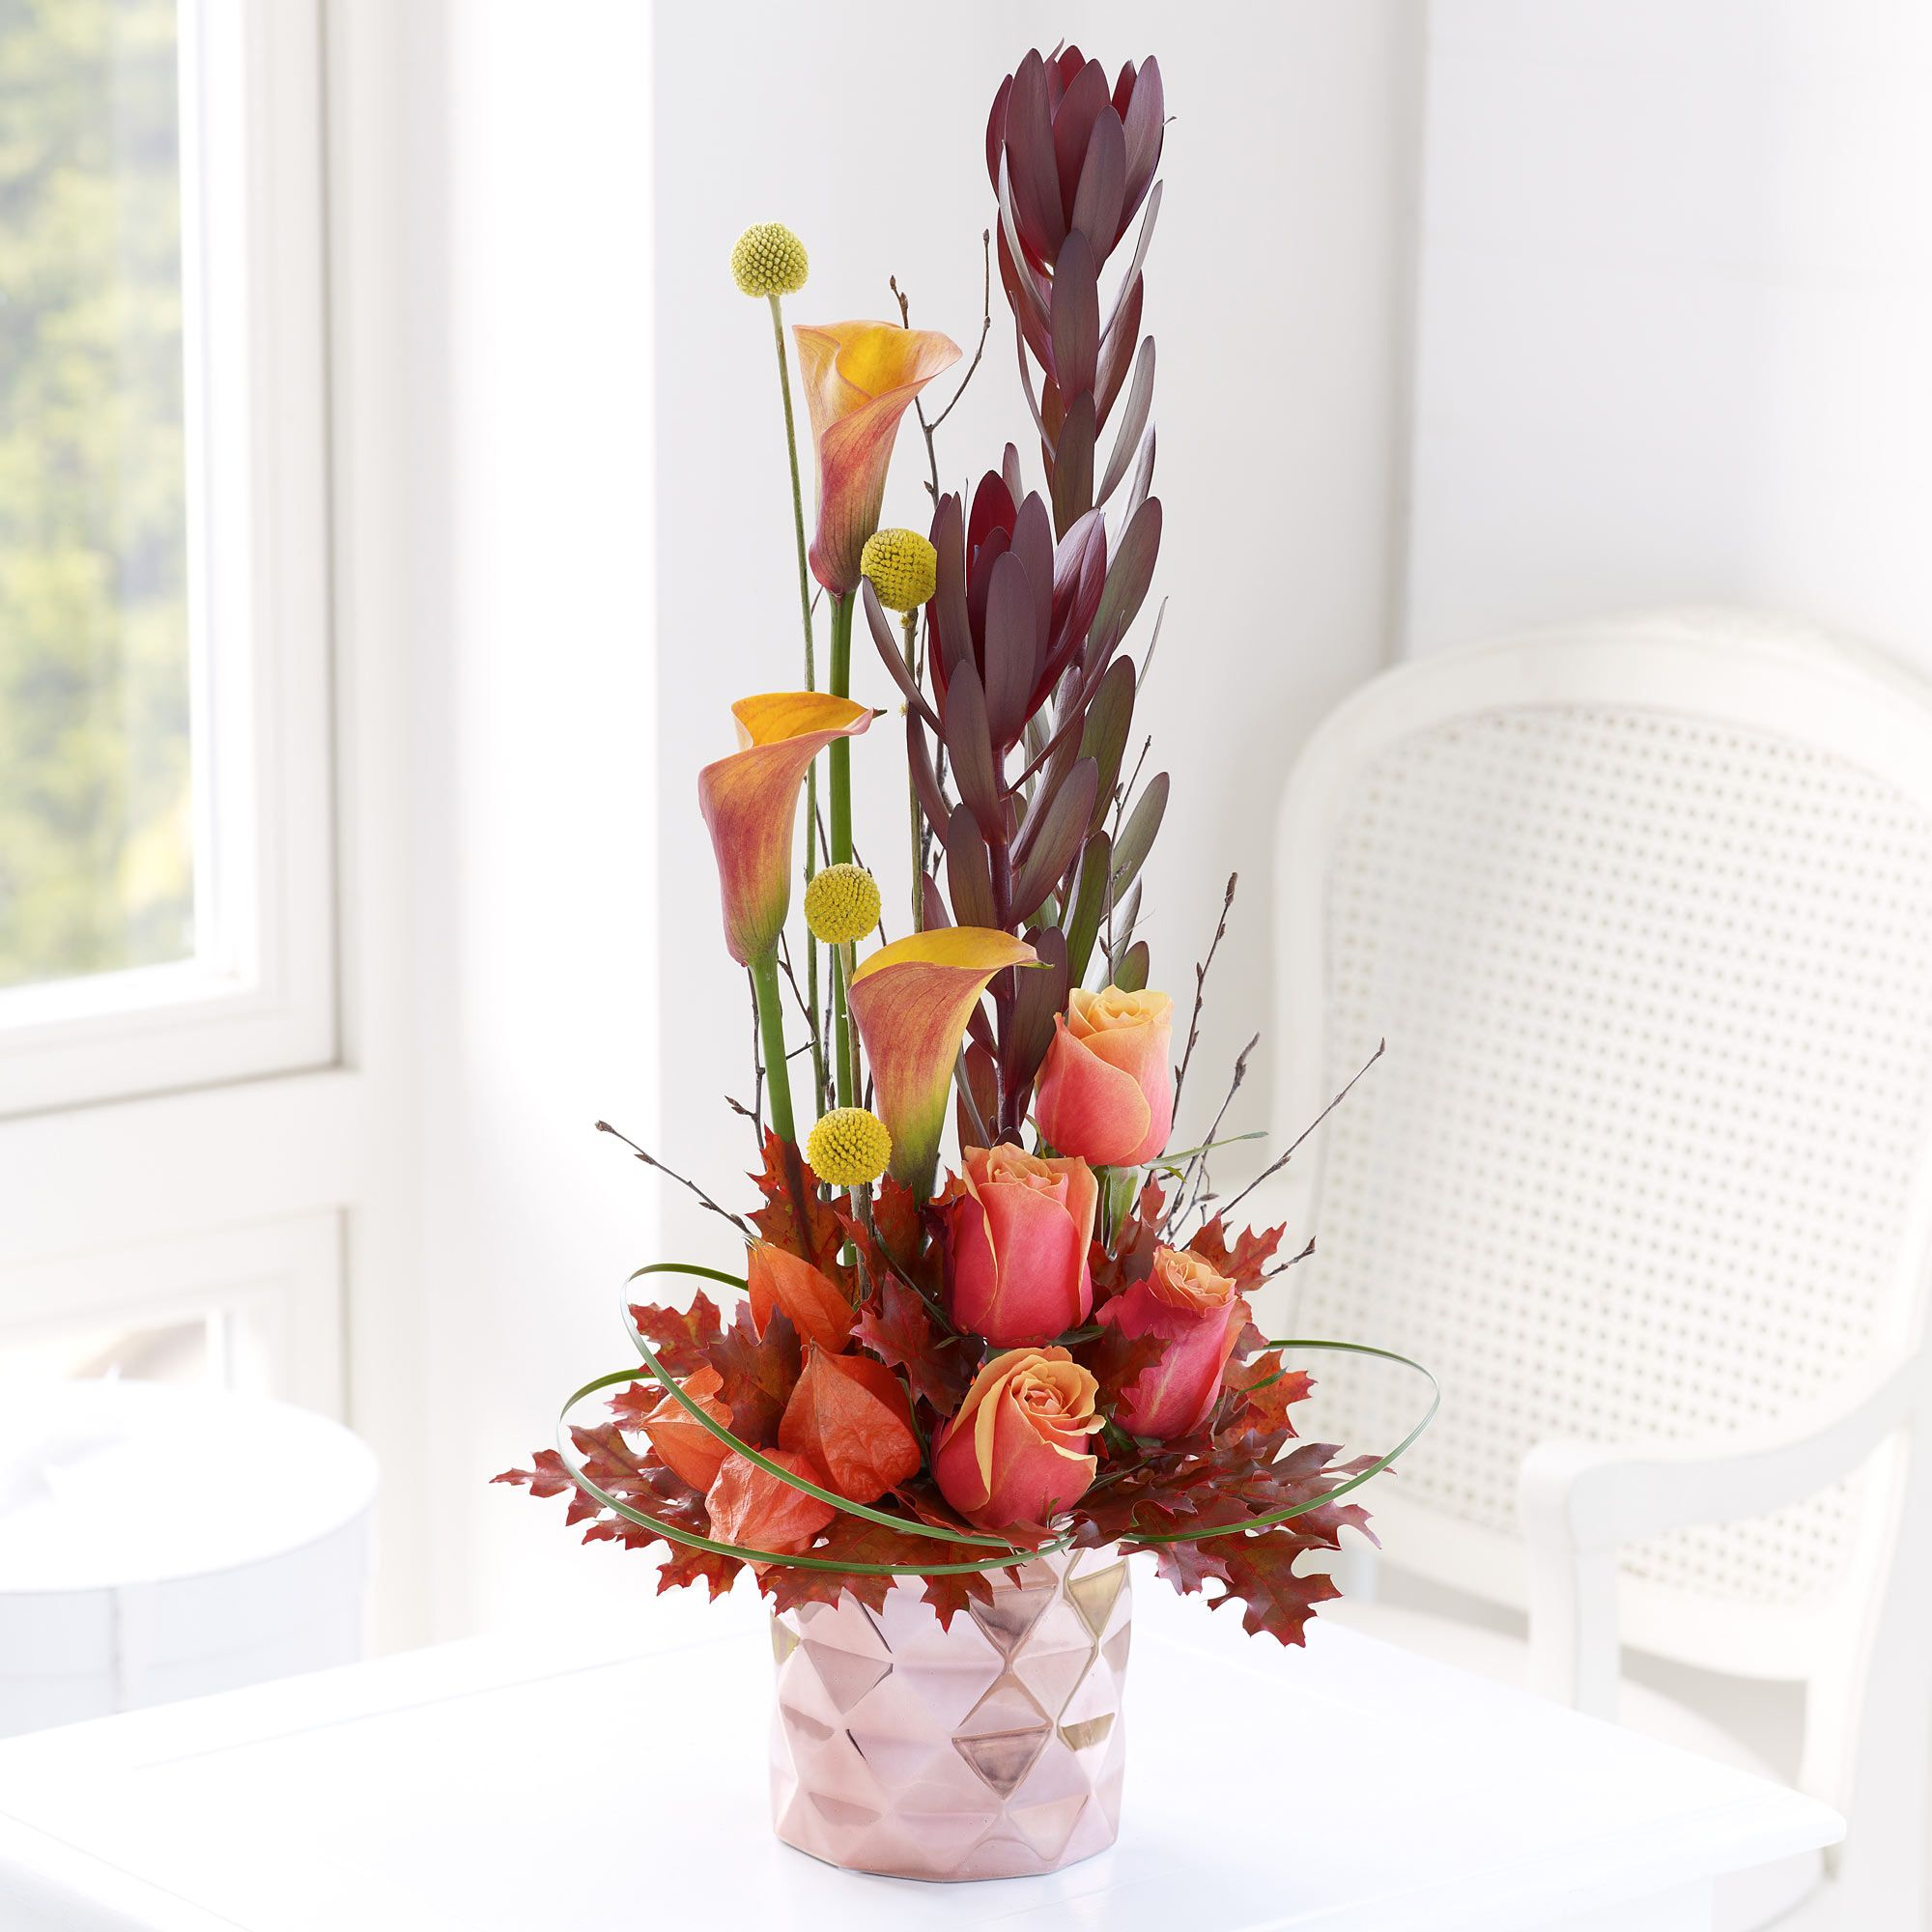 Our Luxurious Calla Lily Arrangement Looks Magical In The Home